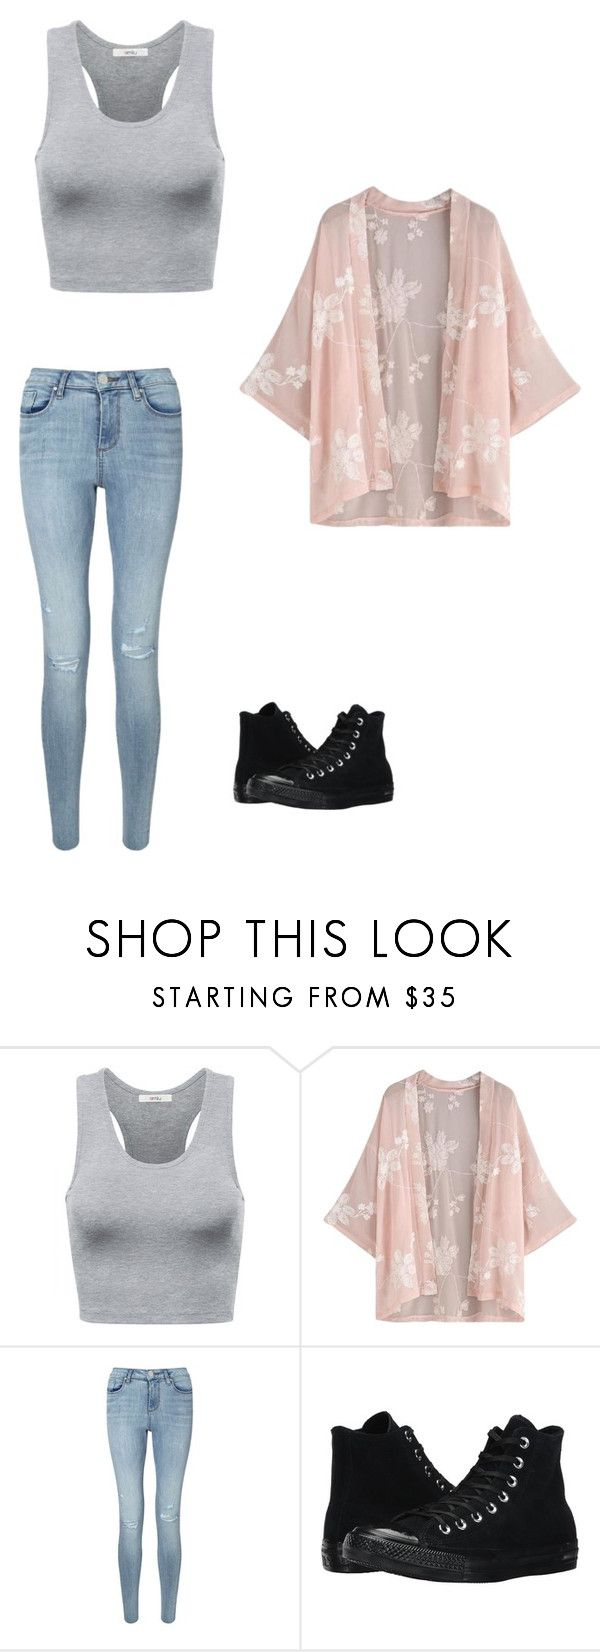 """Untitled #464"" by austynh on Polyvore featuring Miss Selfridge and Converse"